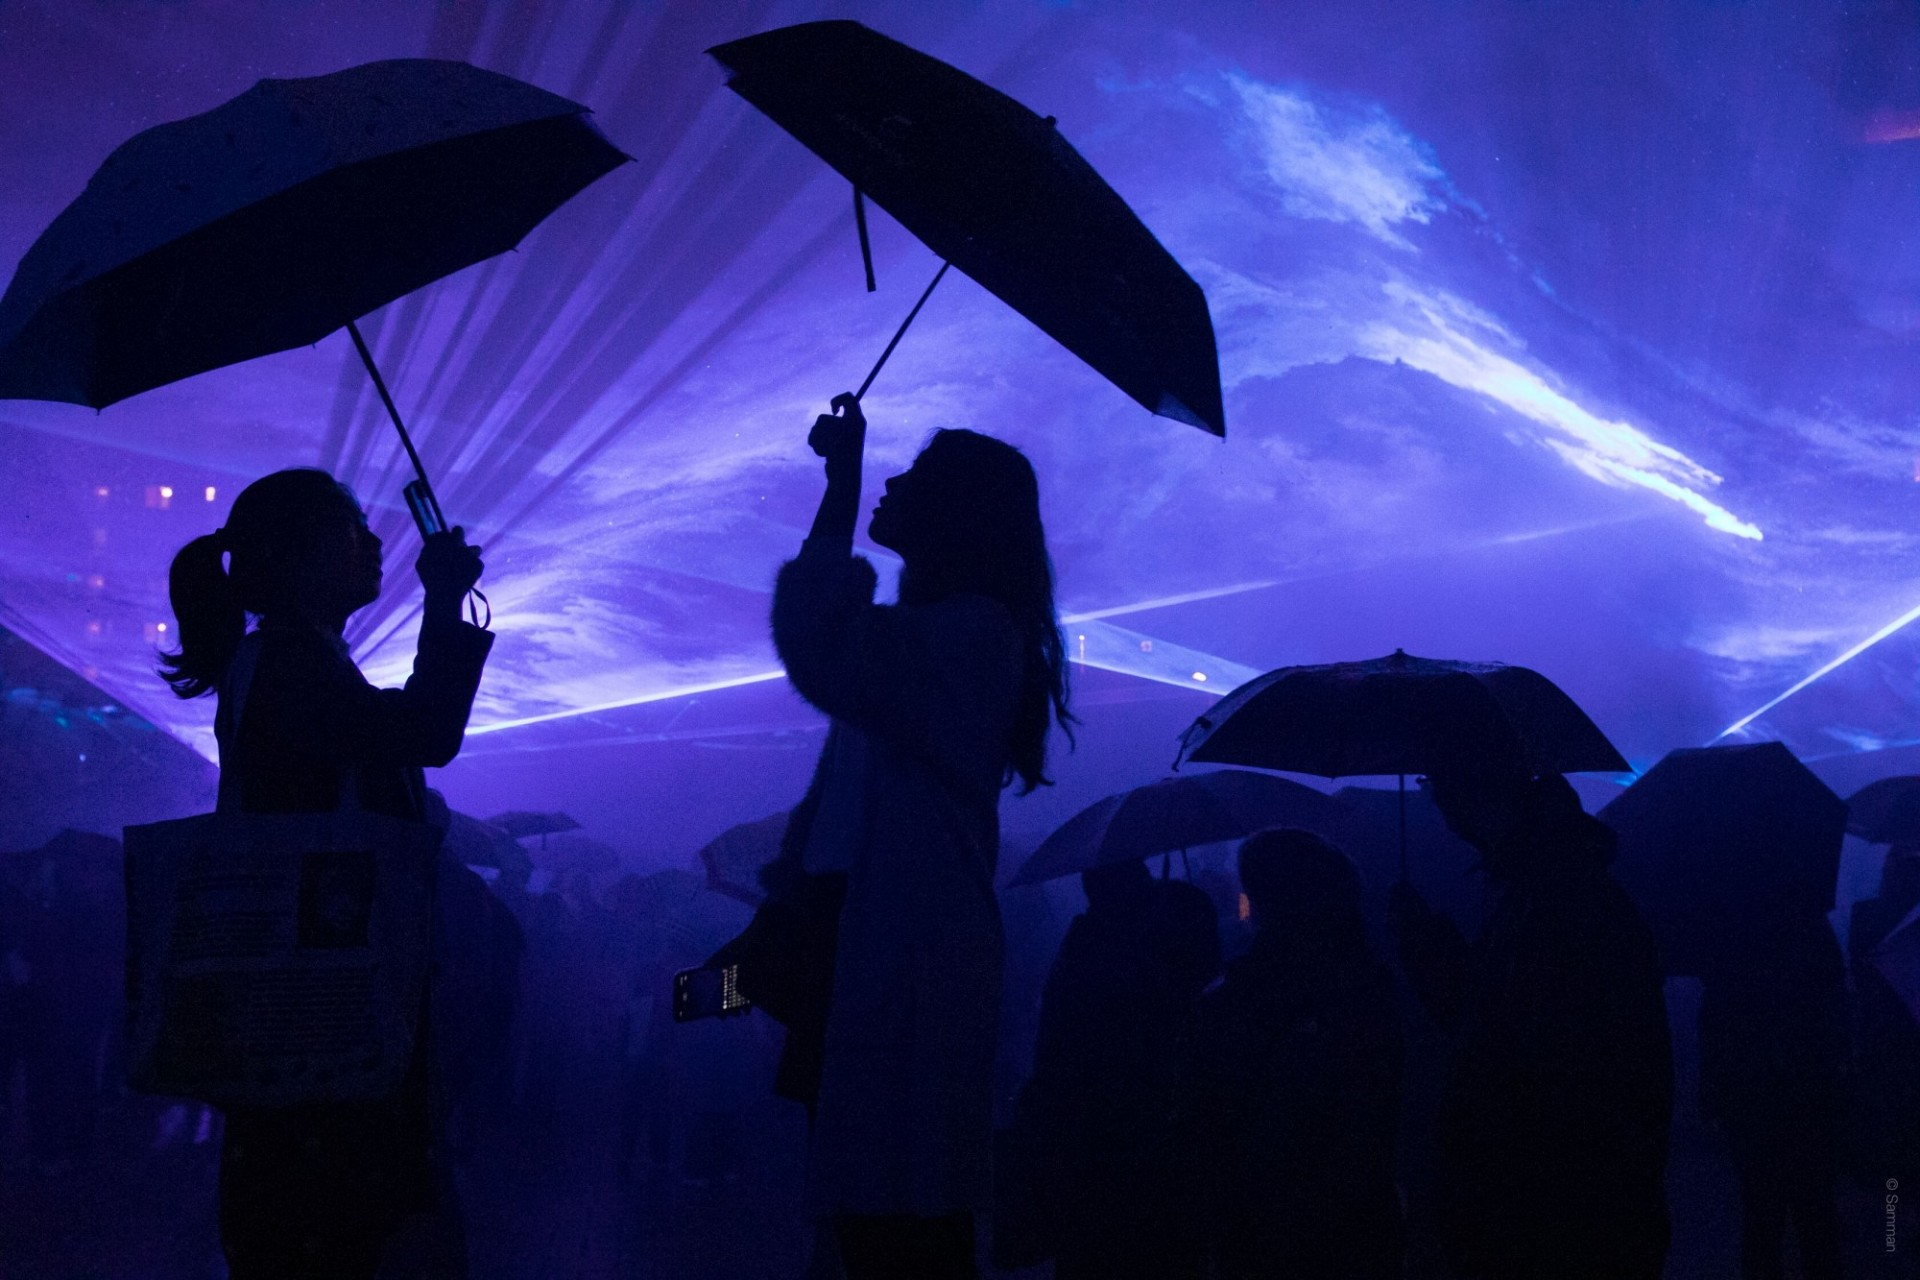 People in silhouette with umbrellas against a blue background of light